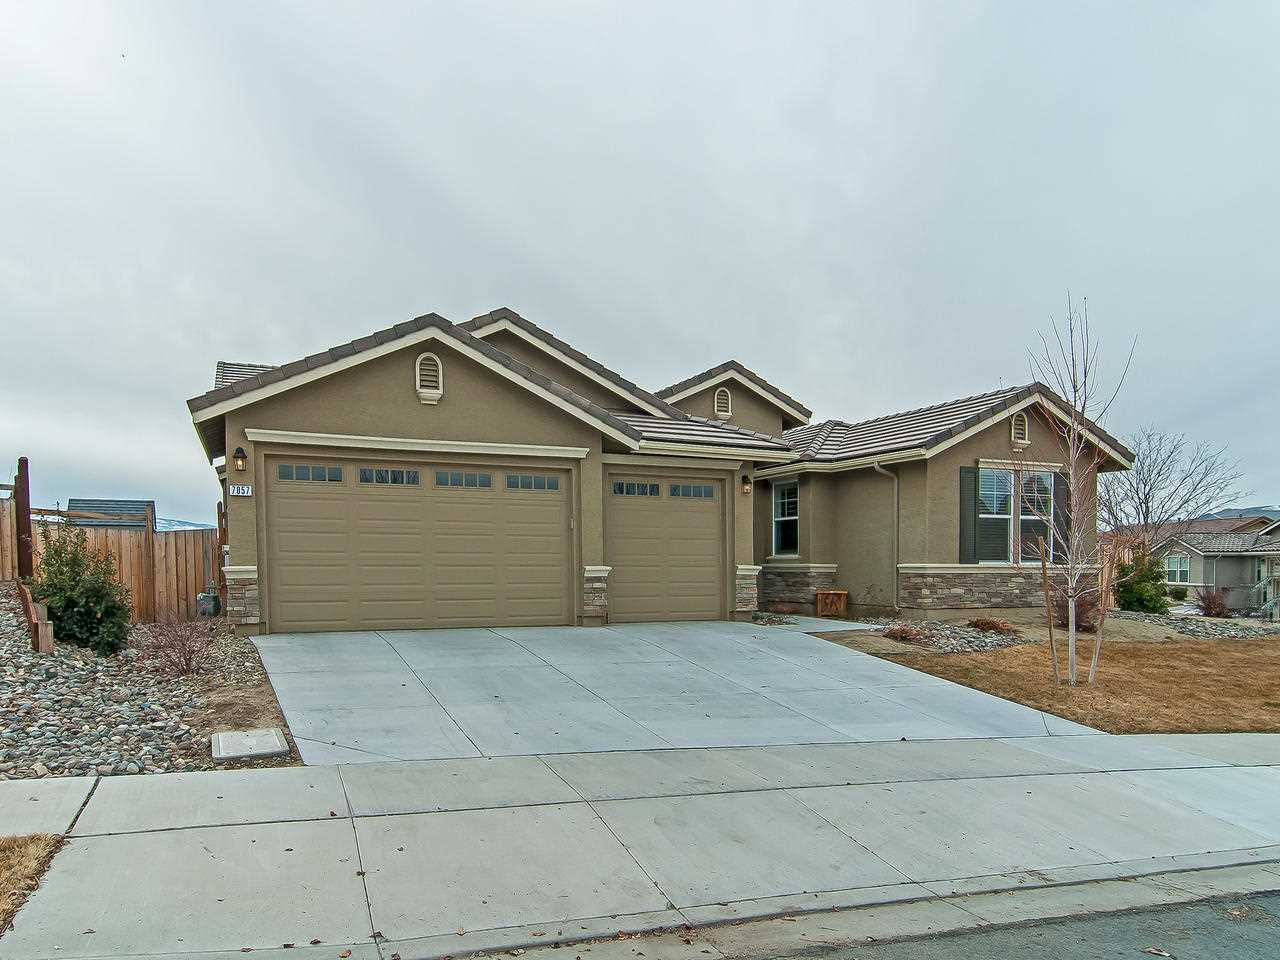 7057 Cassiopeia Ct Sparks, NV 89436 | MLS 190001174 Photo 1